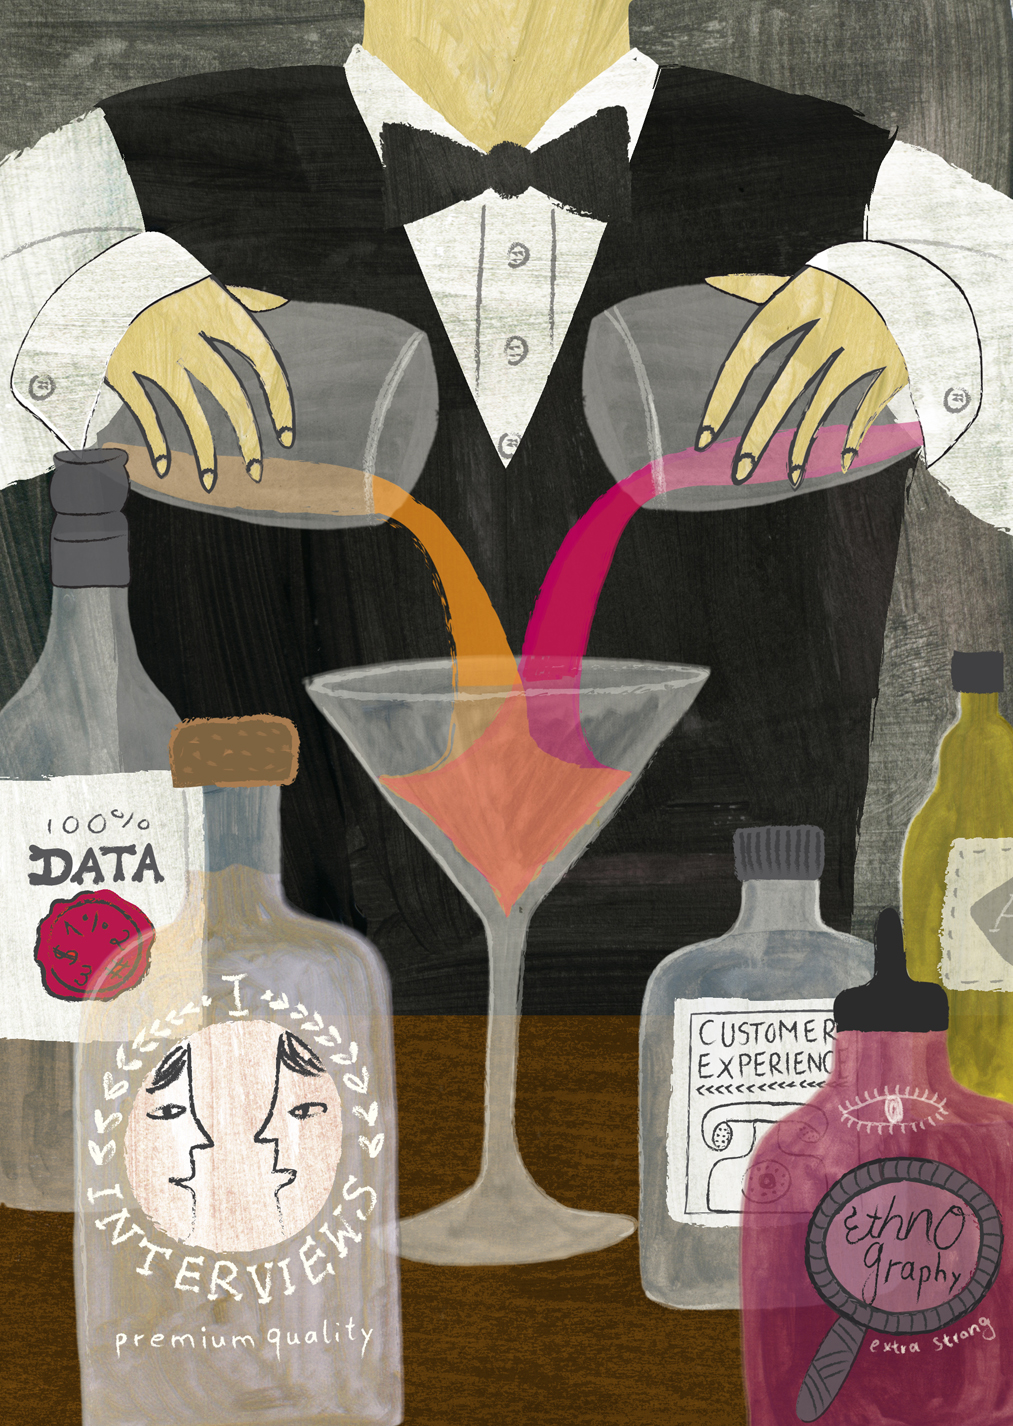 comparing researcher to mixologist